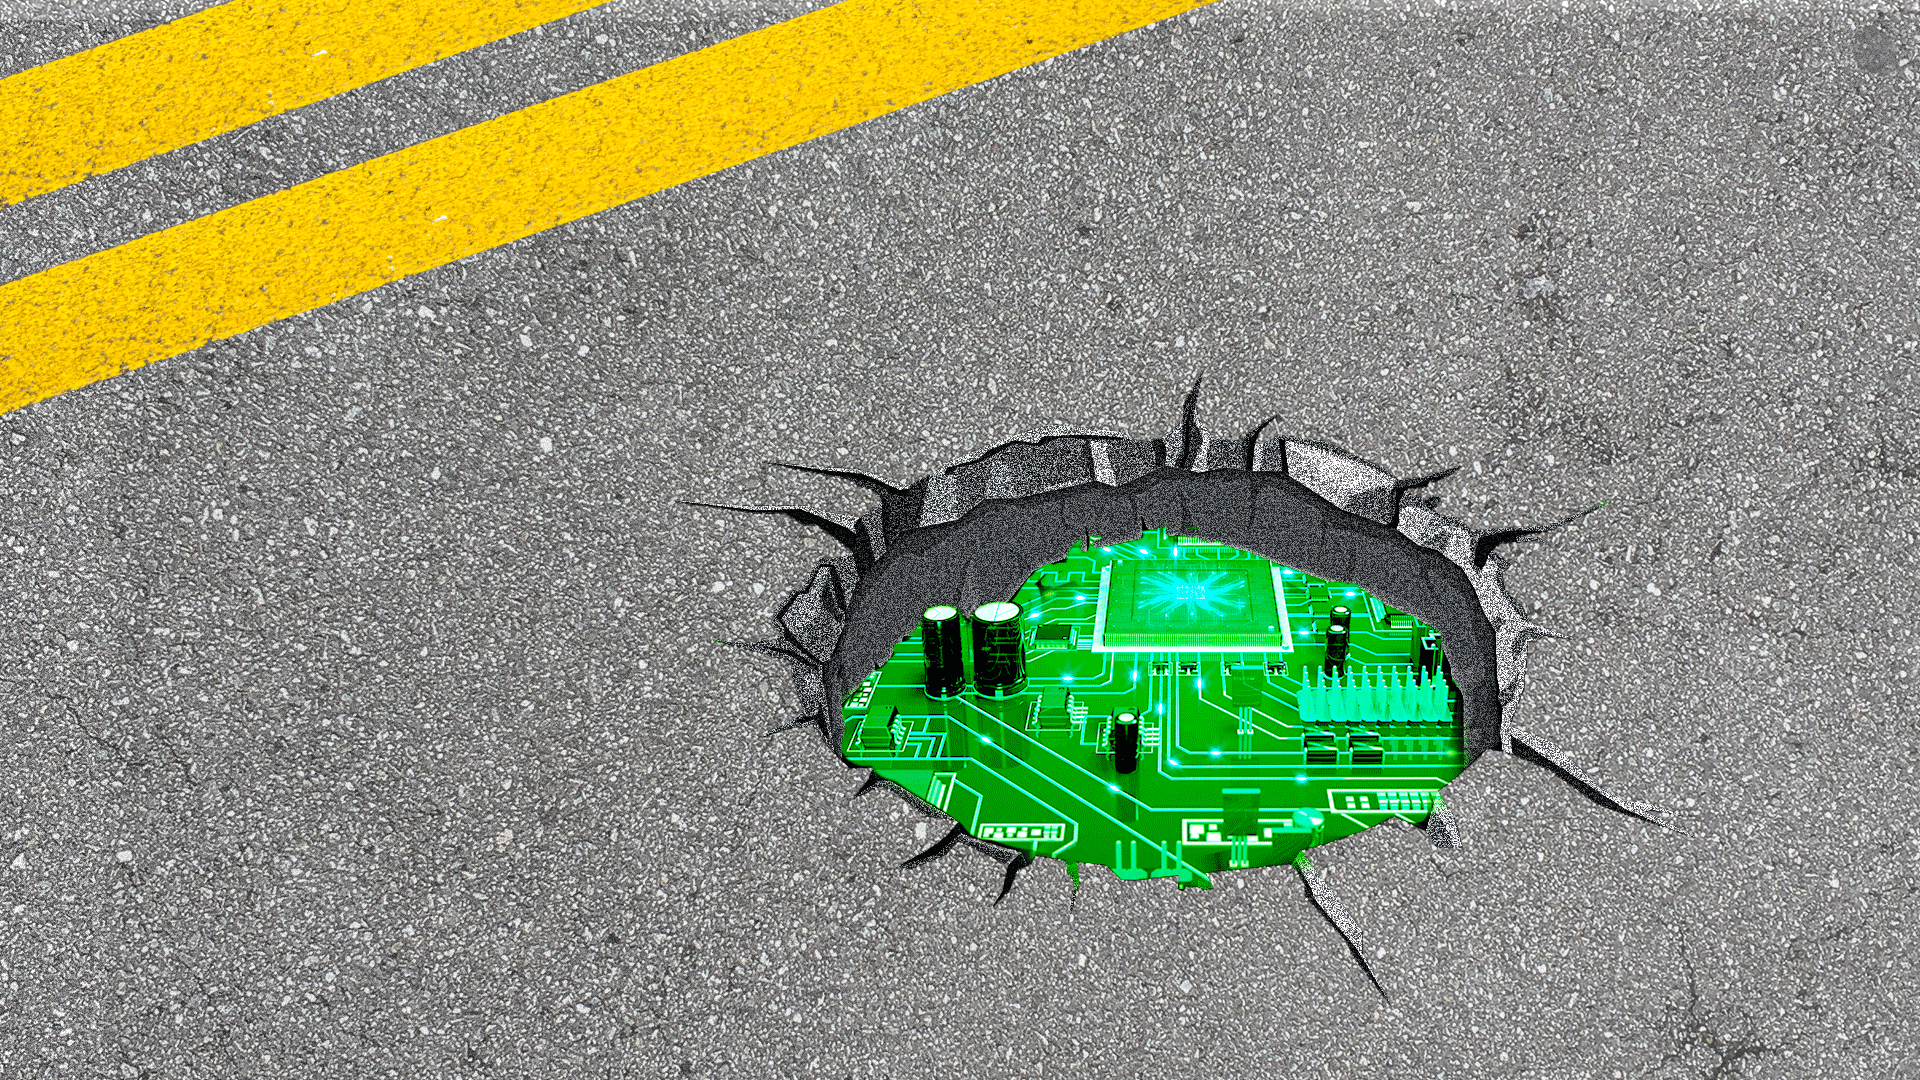 Illustration of a pothole with a circuit board peeking through.